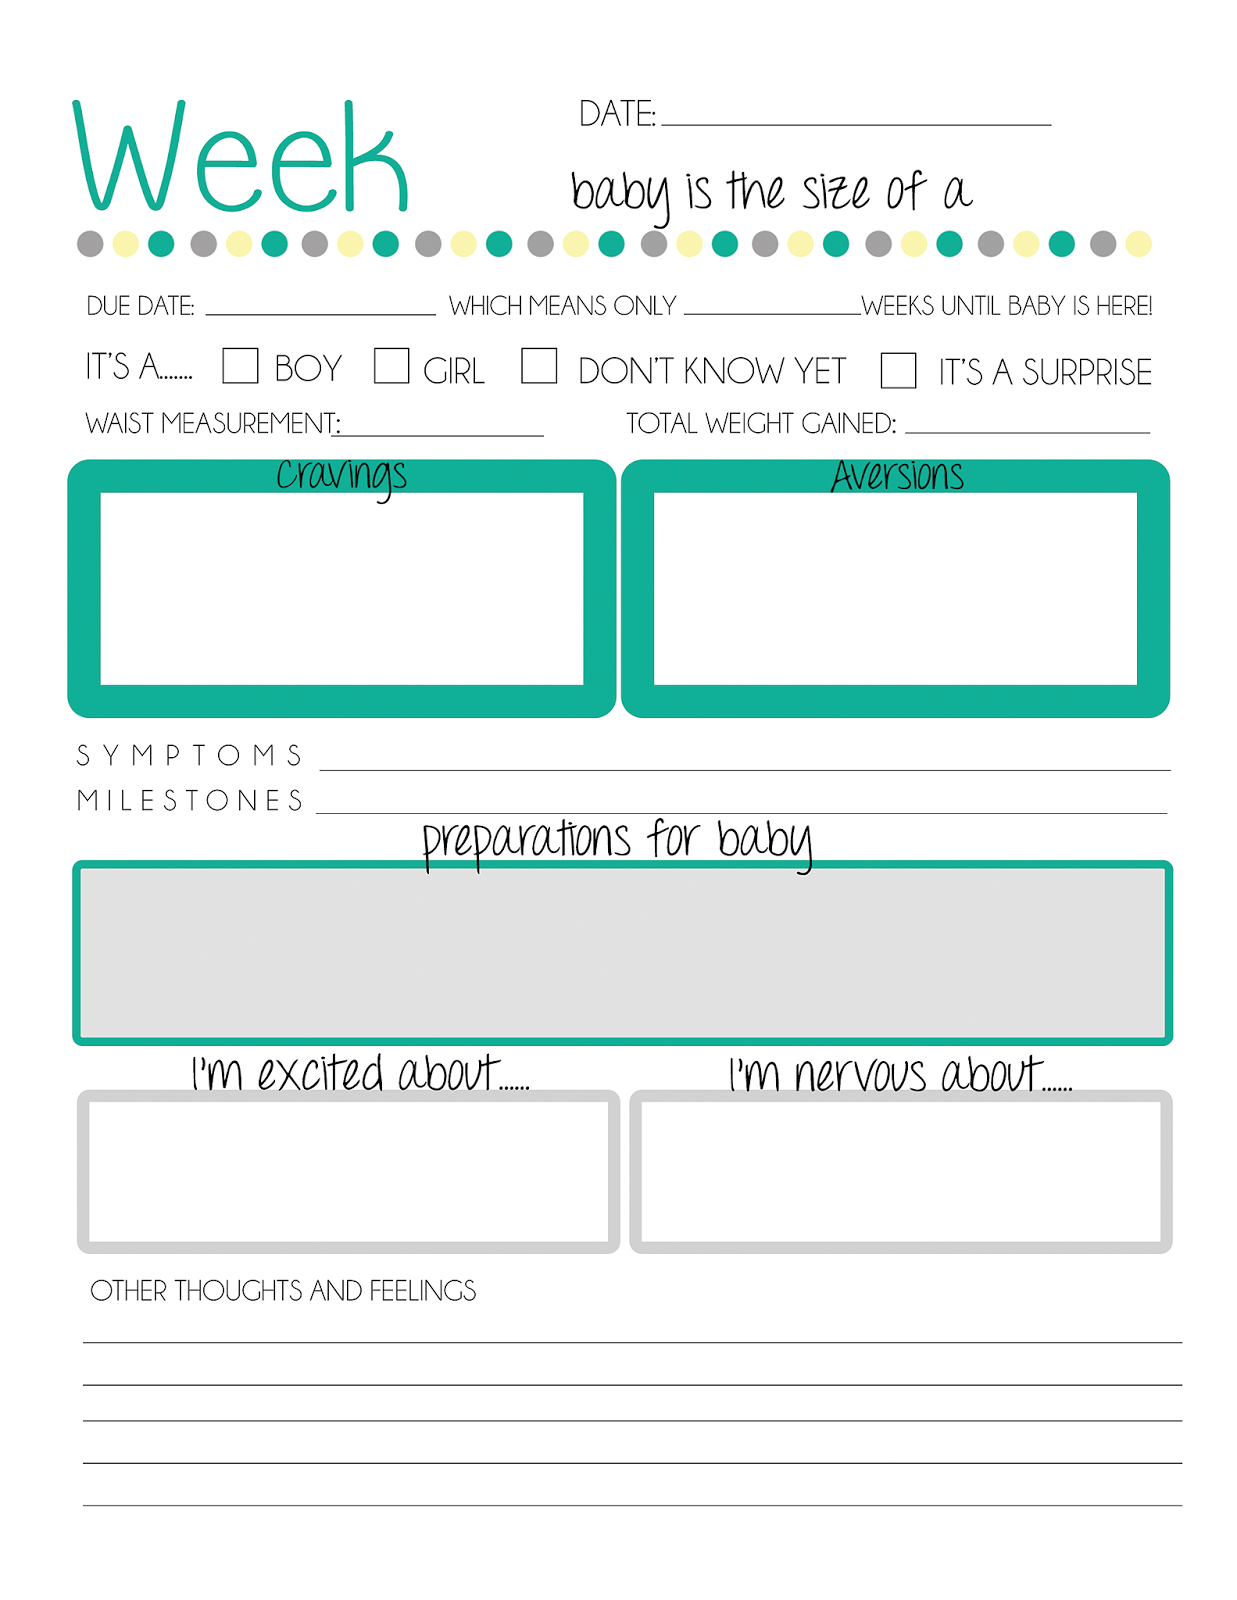 pregnancy journal template free - my pure life photographer and wife pregnancy journal